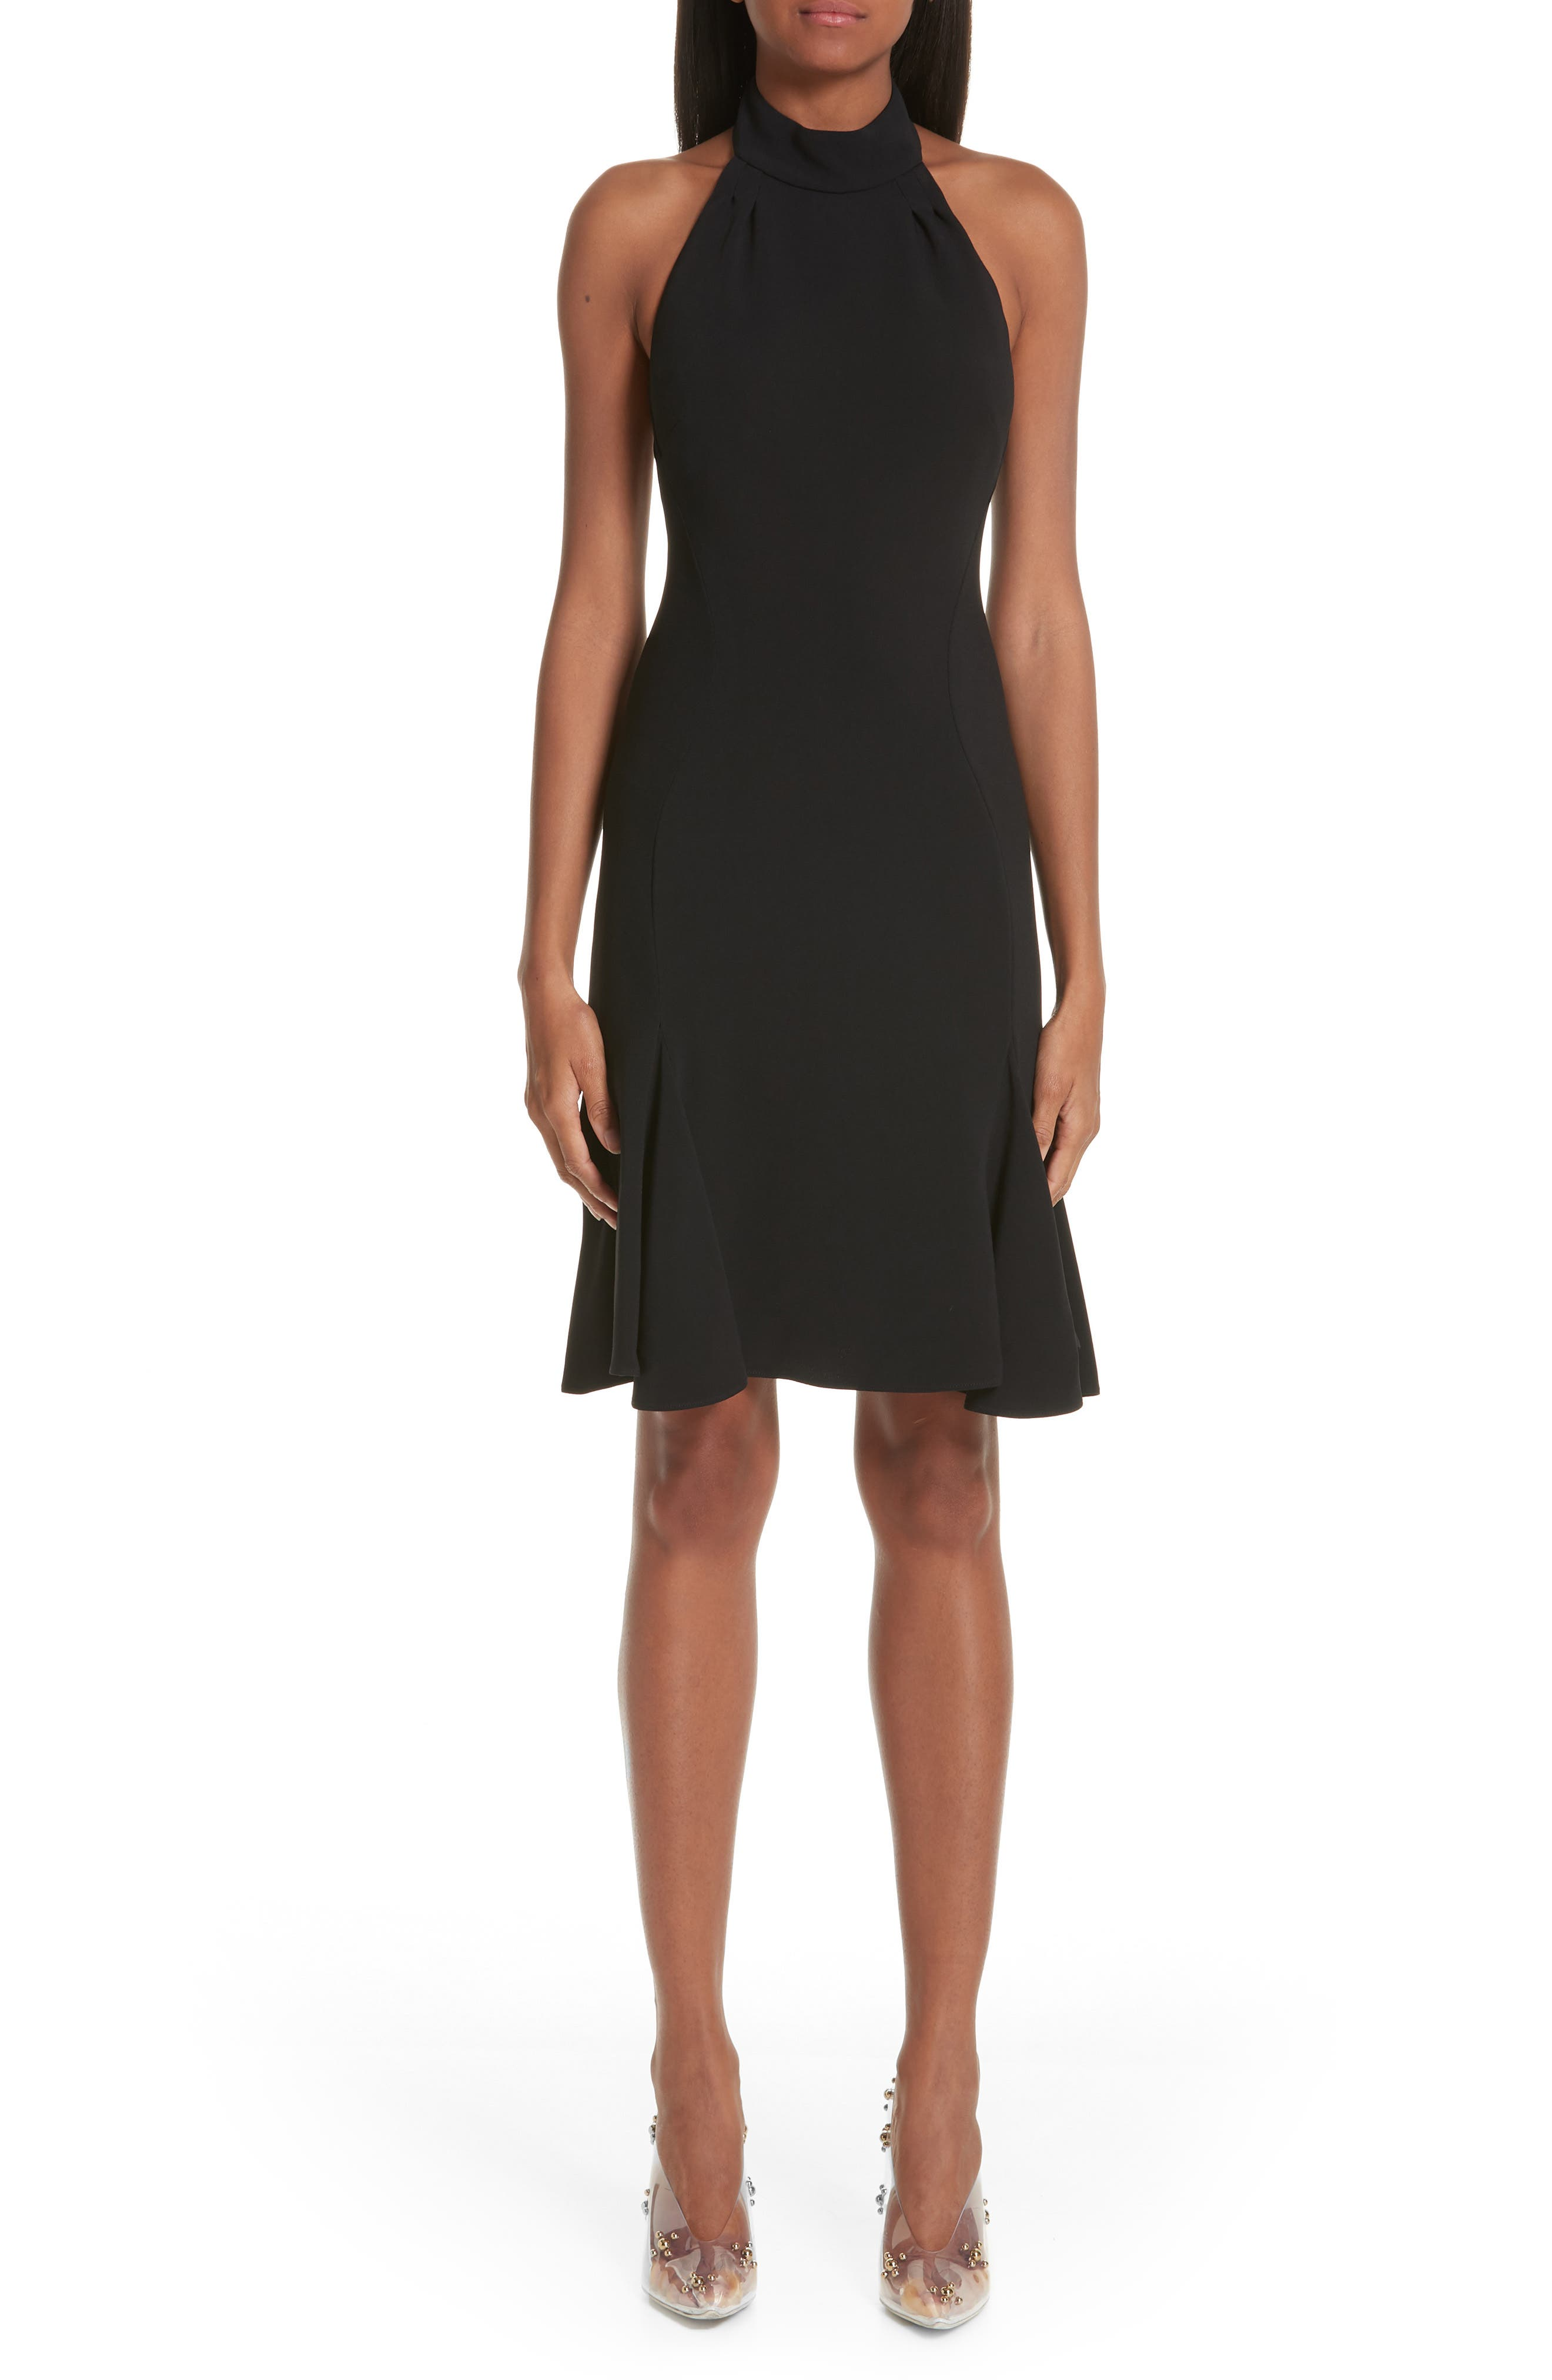 Stella Mccartney Stretch Cady Halter Dress, US / 46 IT - Black